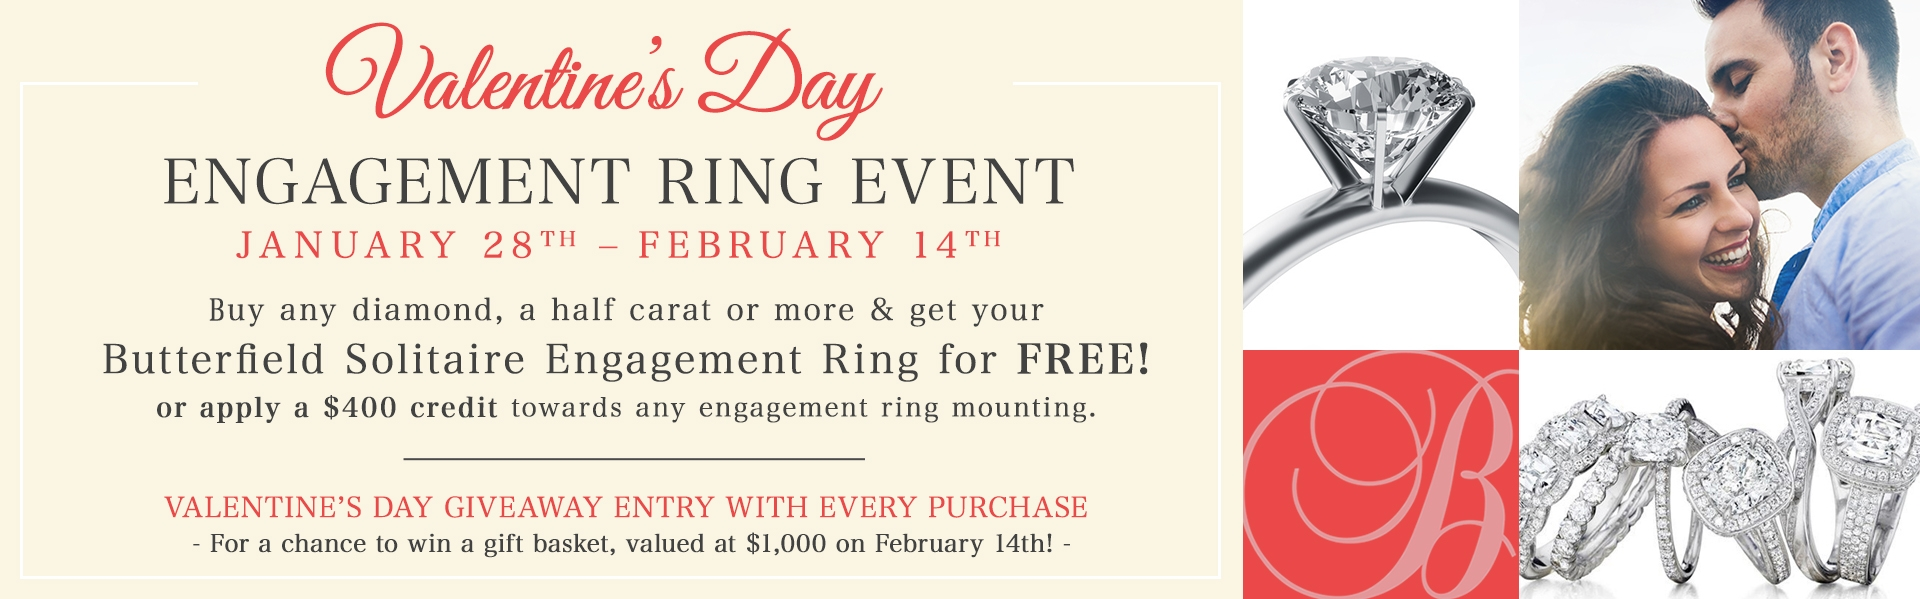 Valentines Day Free Ring Event